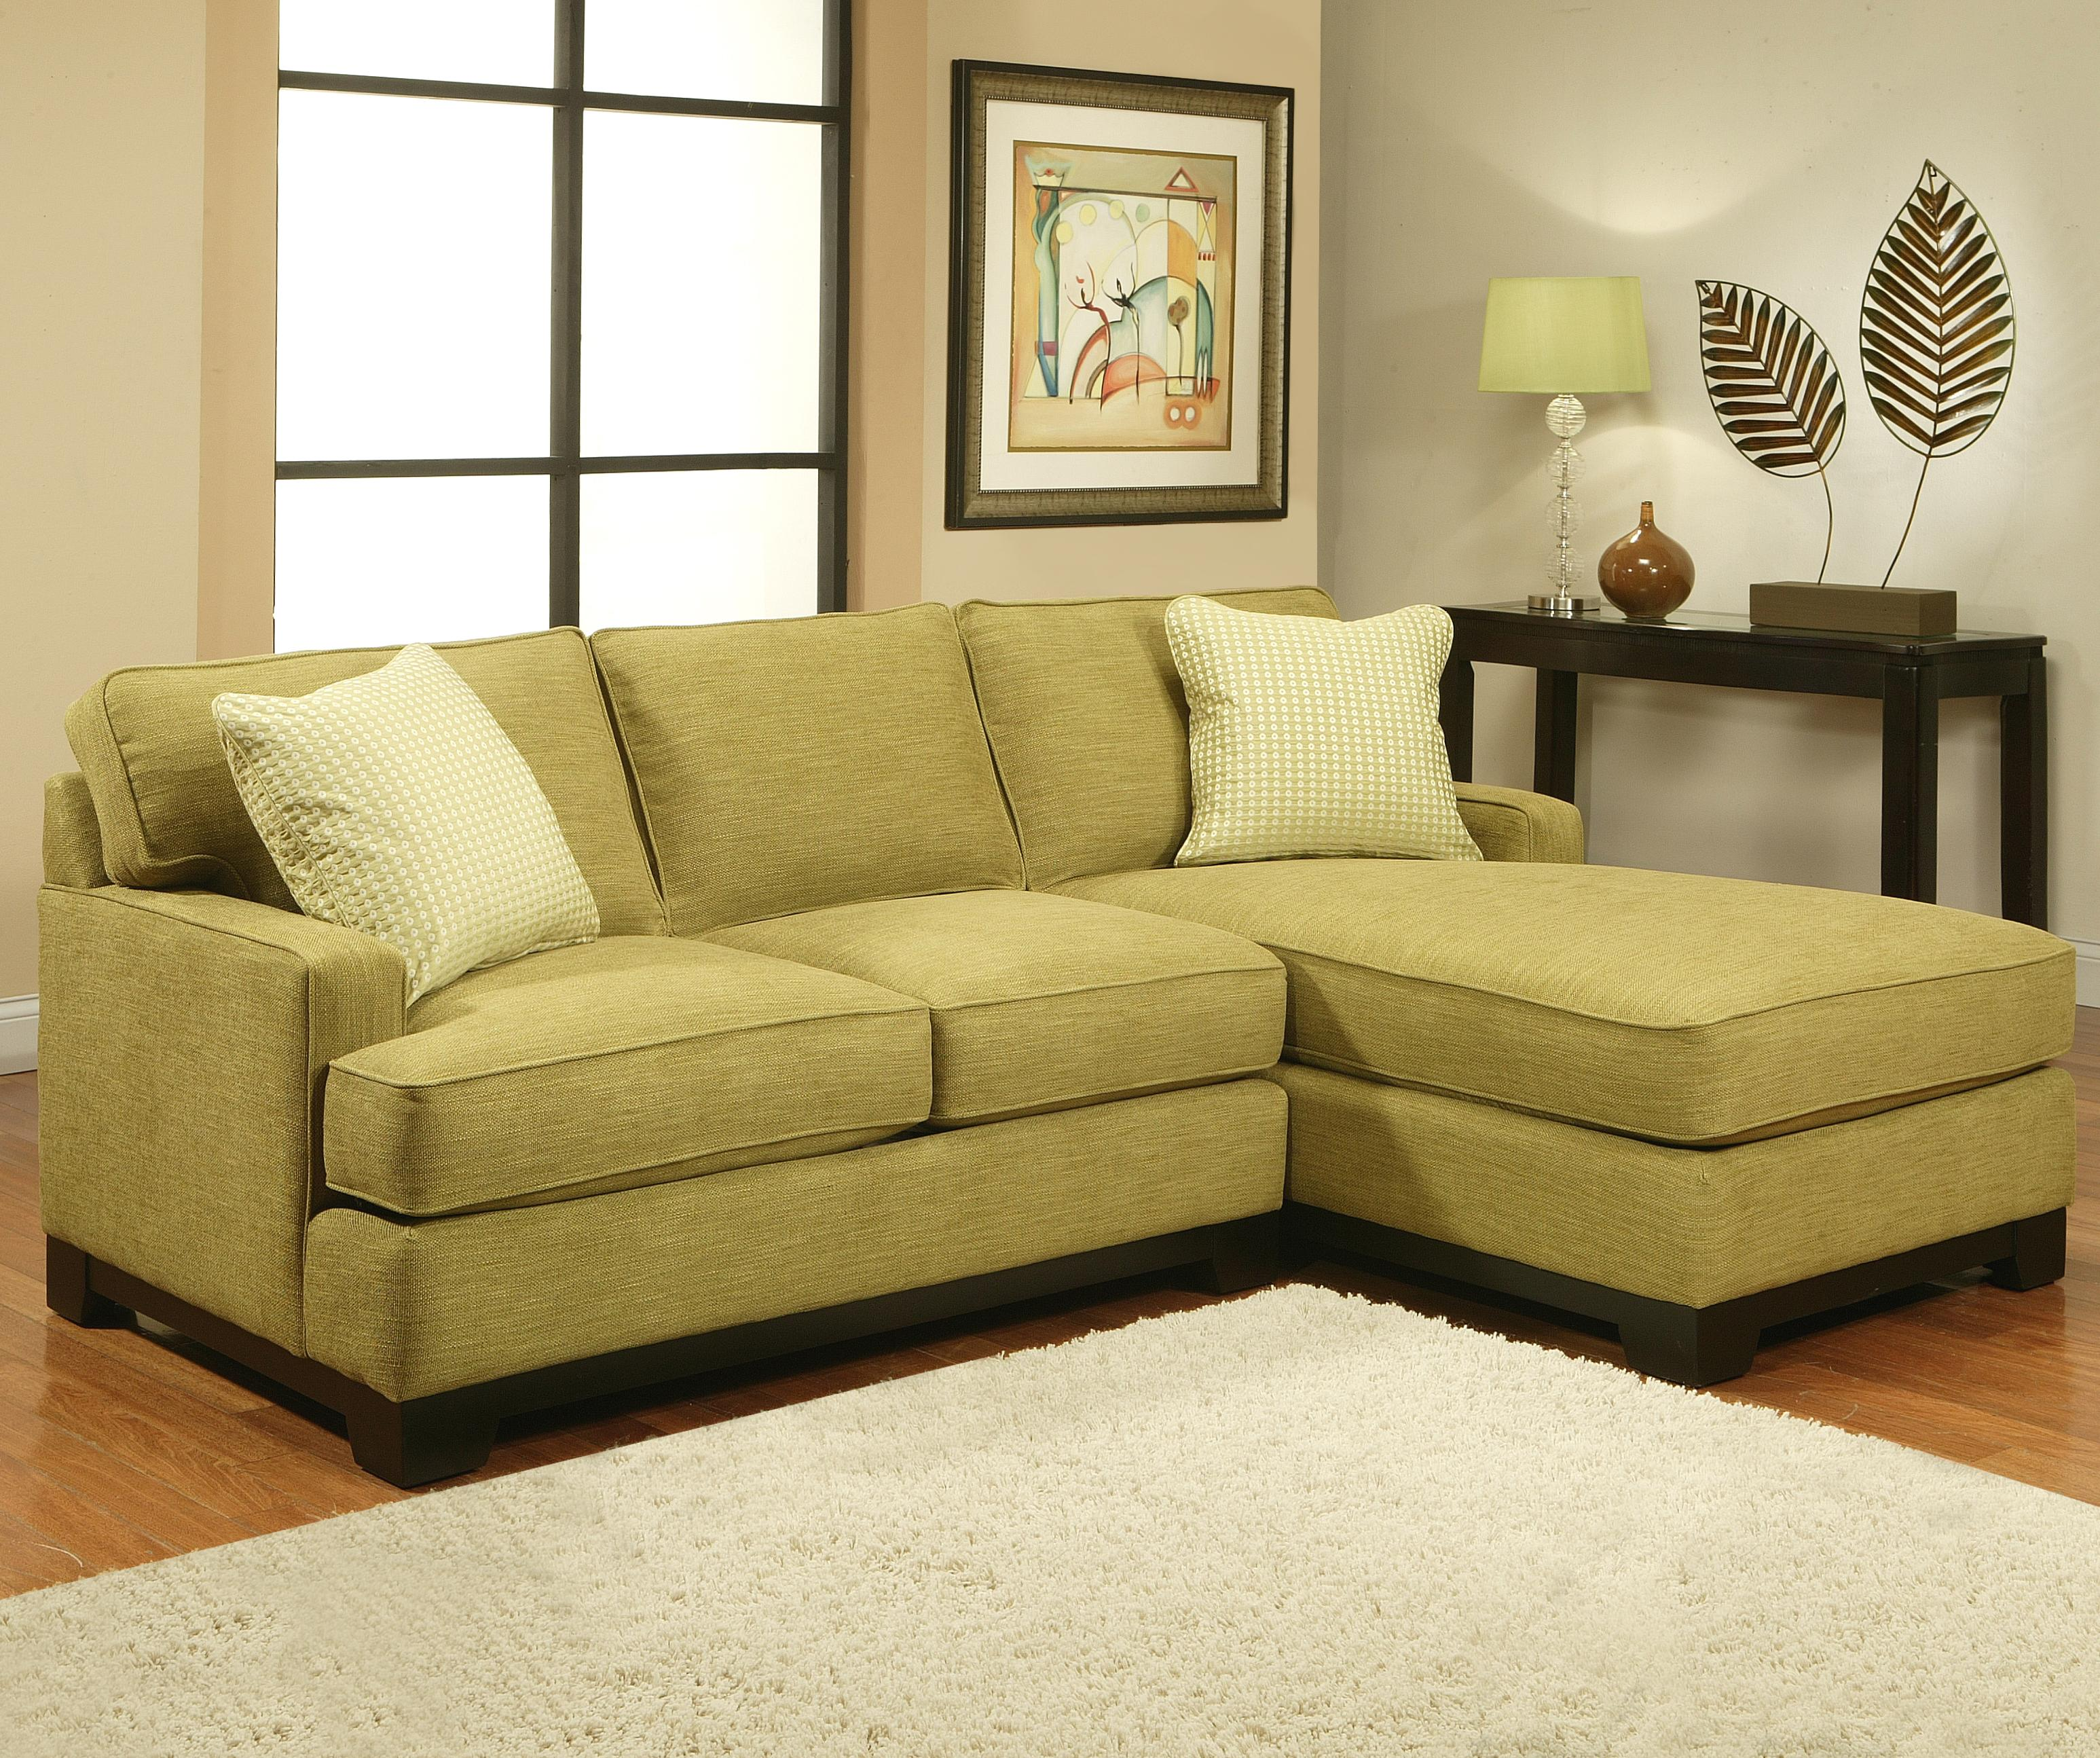 Jonathan Louis Choices Kronos Contemporary Sofa Chaise Sectional With Track Arms Fashion Furniture Sectional Sofas